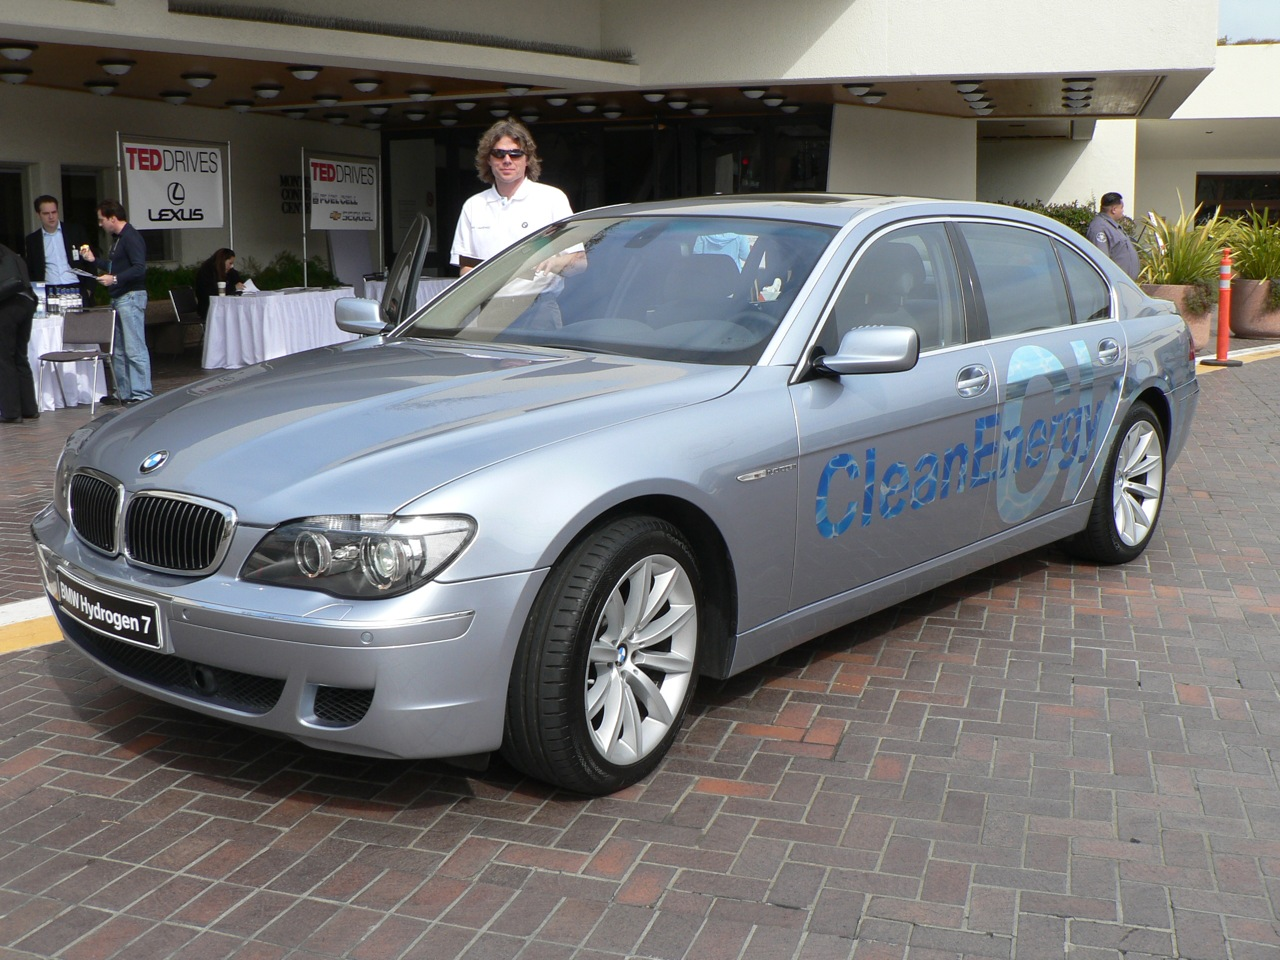 File:BMW Hydrogen 7 at TED 2007.jpg